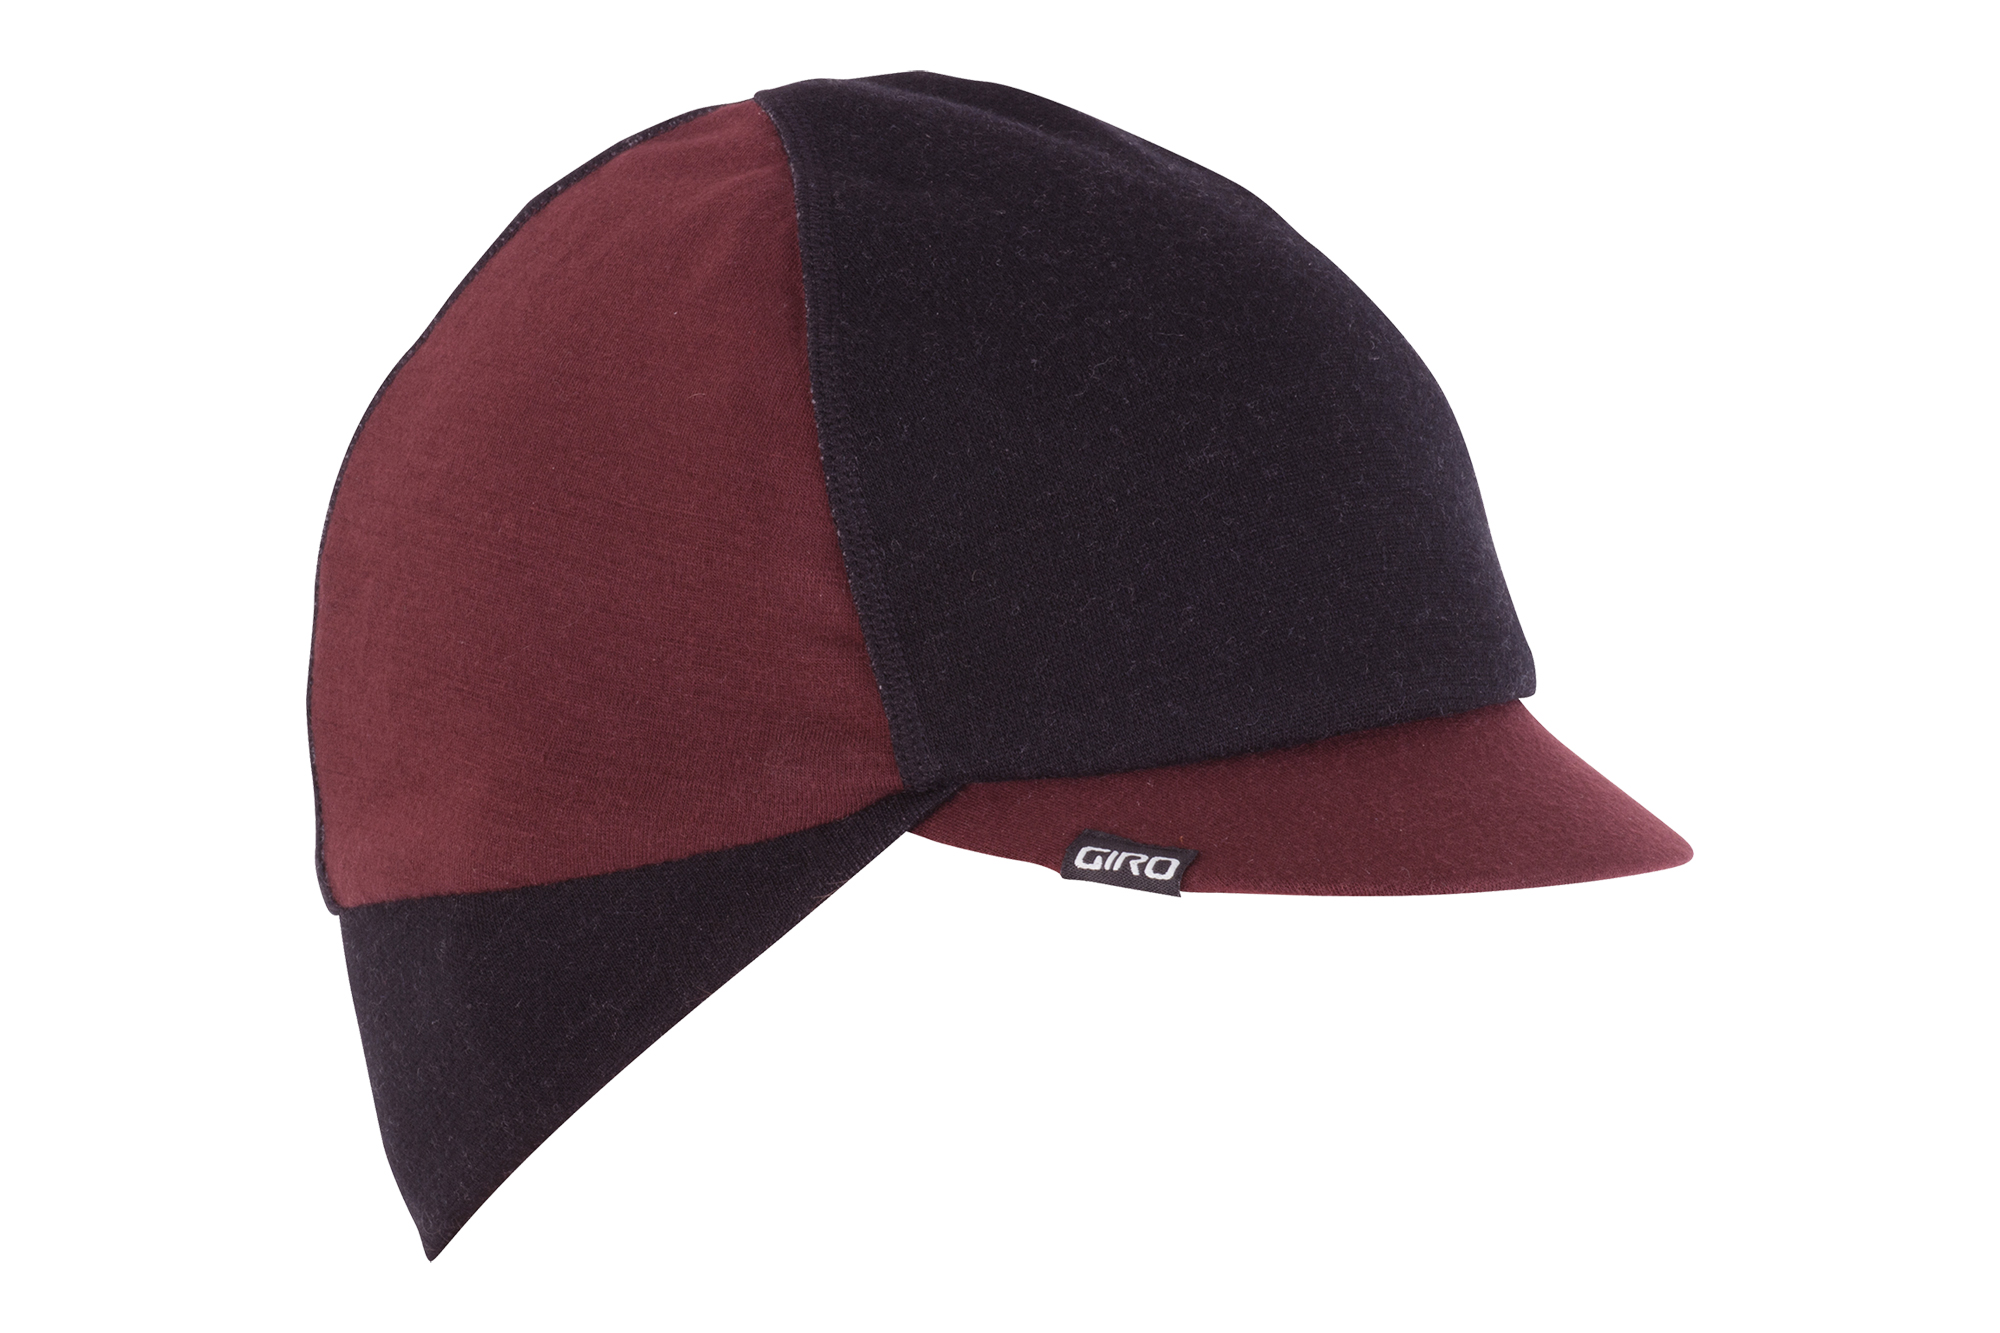 Giro Merino Wool Winter Cycling Cap